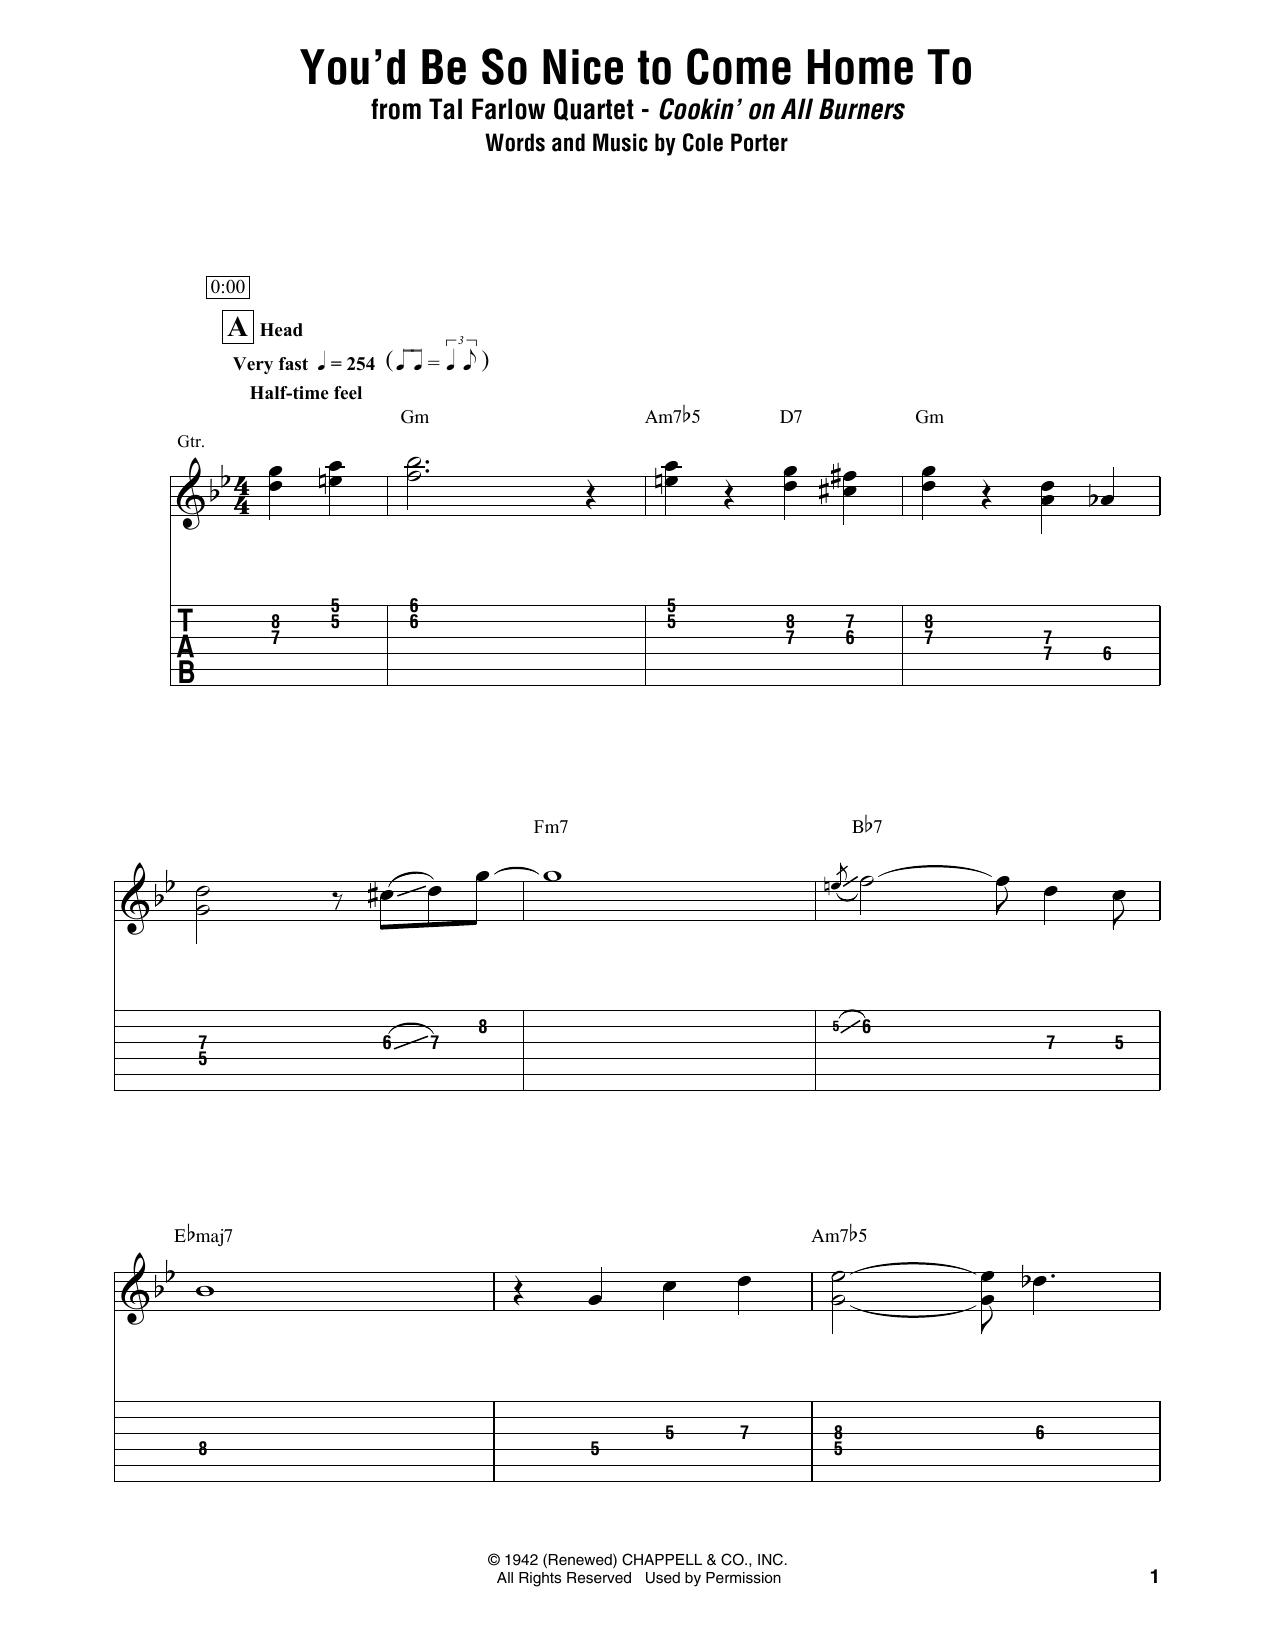 You'd Be So Nice To Come Home To (Electric Guitar Transcription)